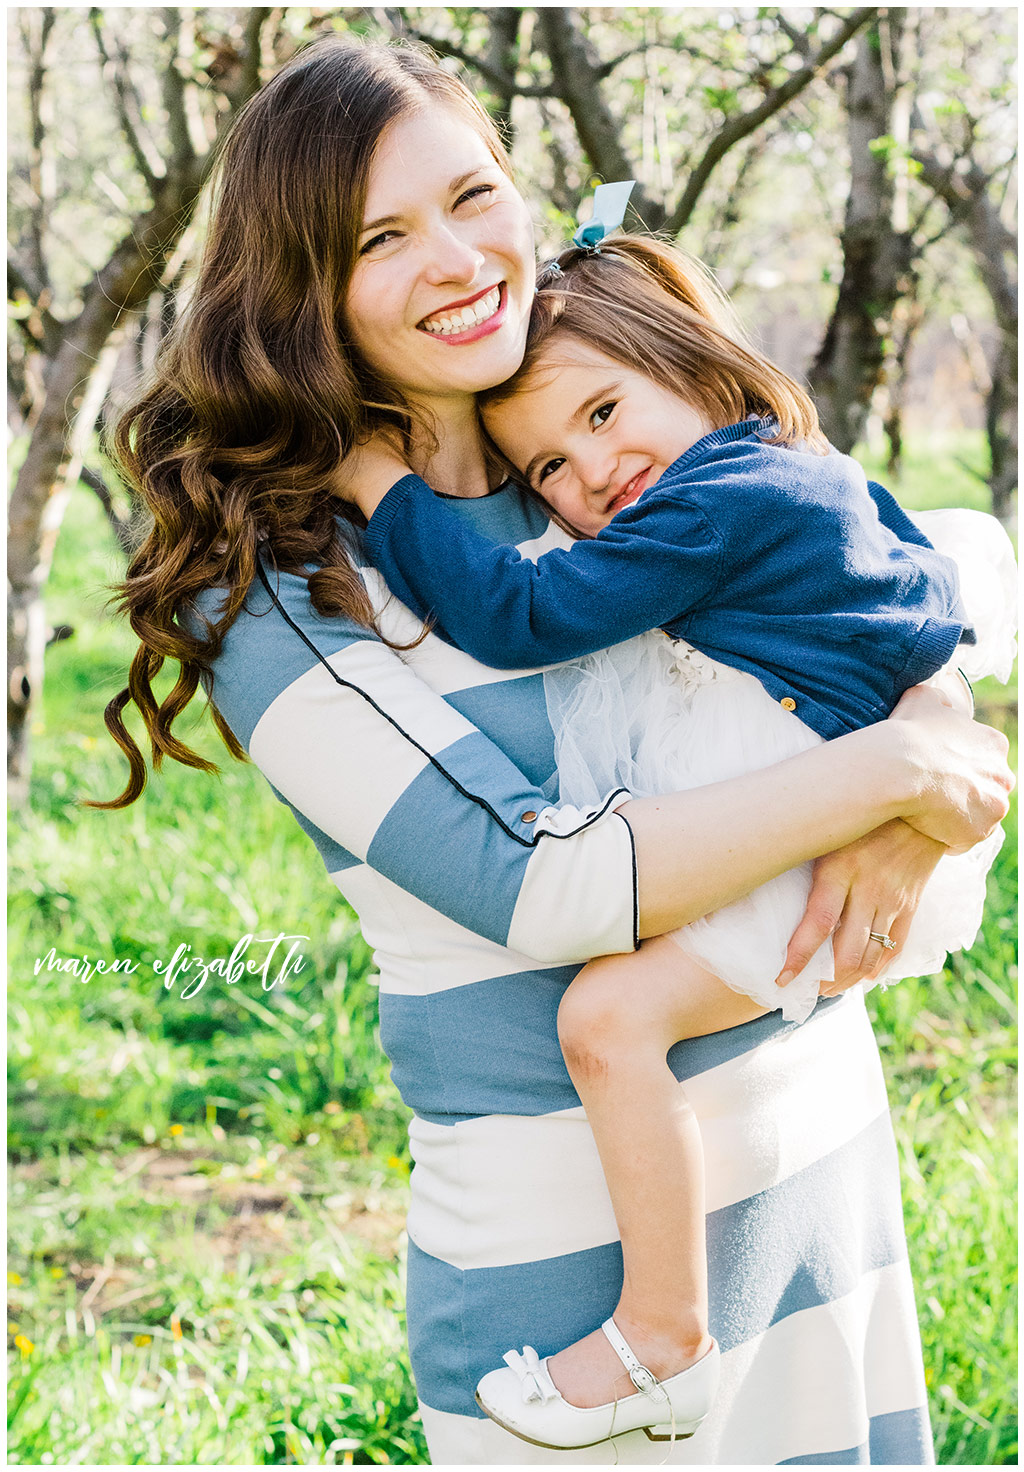 Provo Orchard Family Pictures in the spring. The family chose a neutral blue pallet for their outfits which was perfect for the season! | Gilbert Photographer | Mommy & Me